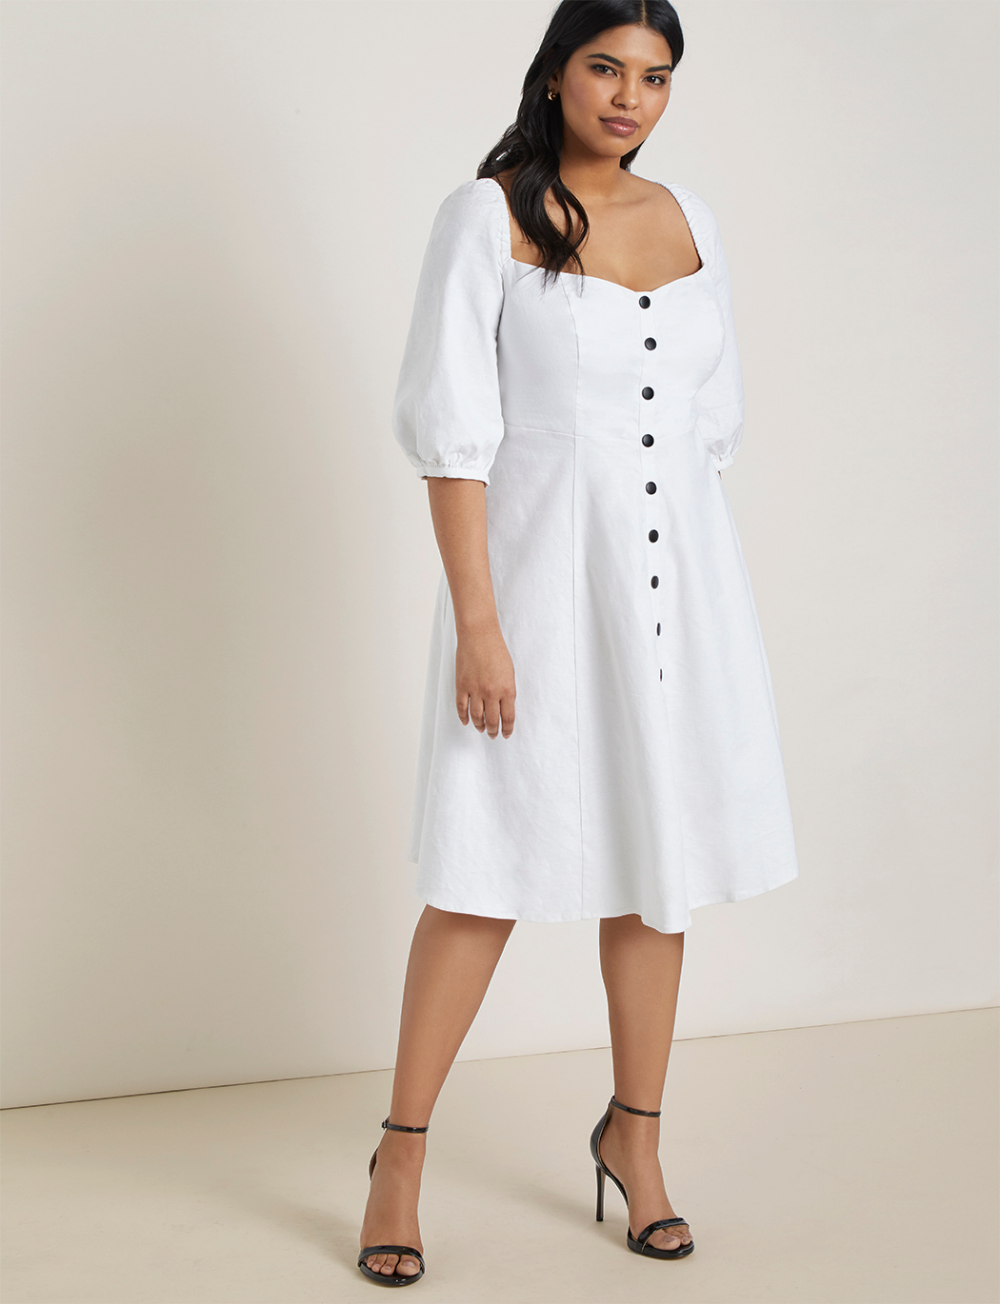 Button Front Puff Sleeve Dress Women S Plus Size Dresses Eloquii Plus Size Spring Dresses Plus Size Outfits Puffed Sleeves Dress [ 1304 x 1000 Pixel ]